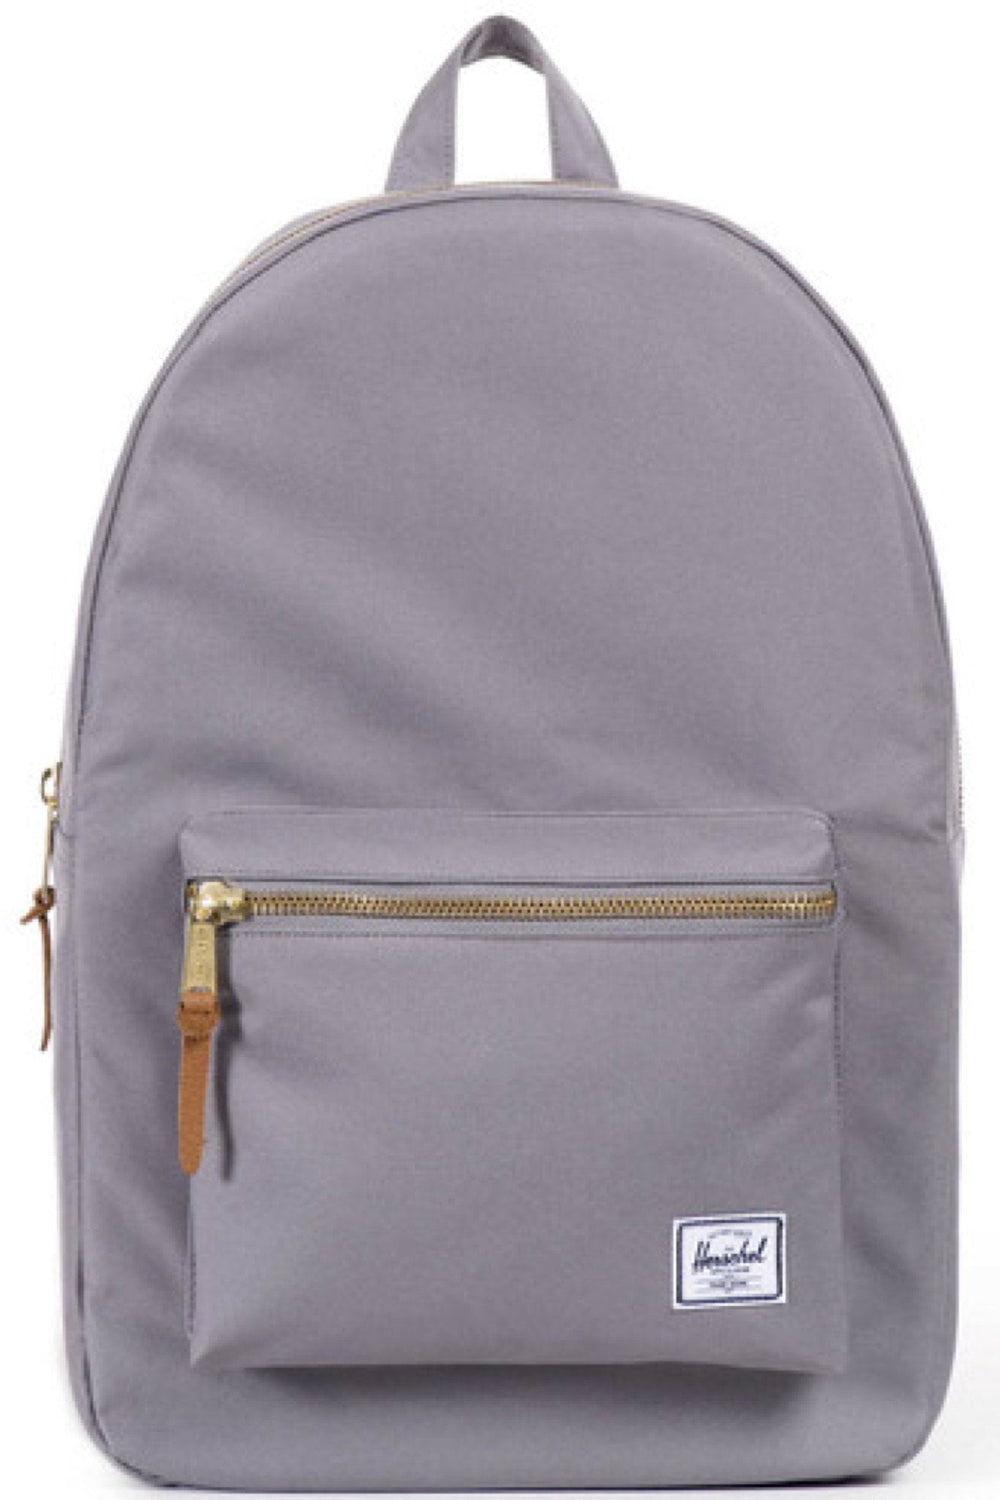 HERSCHEL - SETTLEMENT BACKPACK GREY 20191